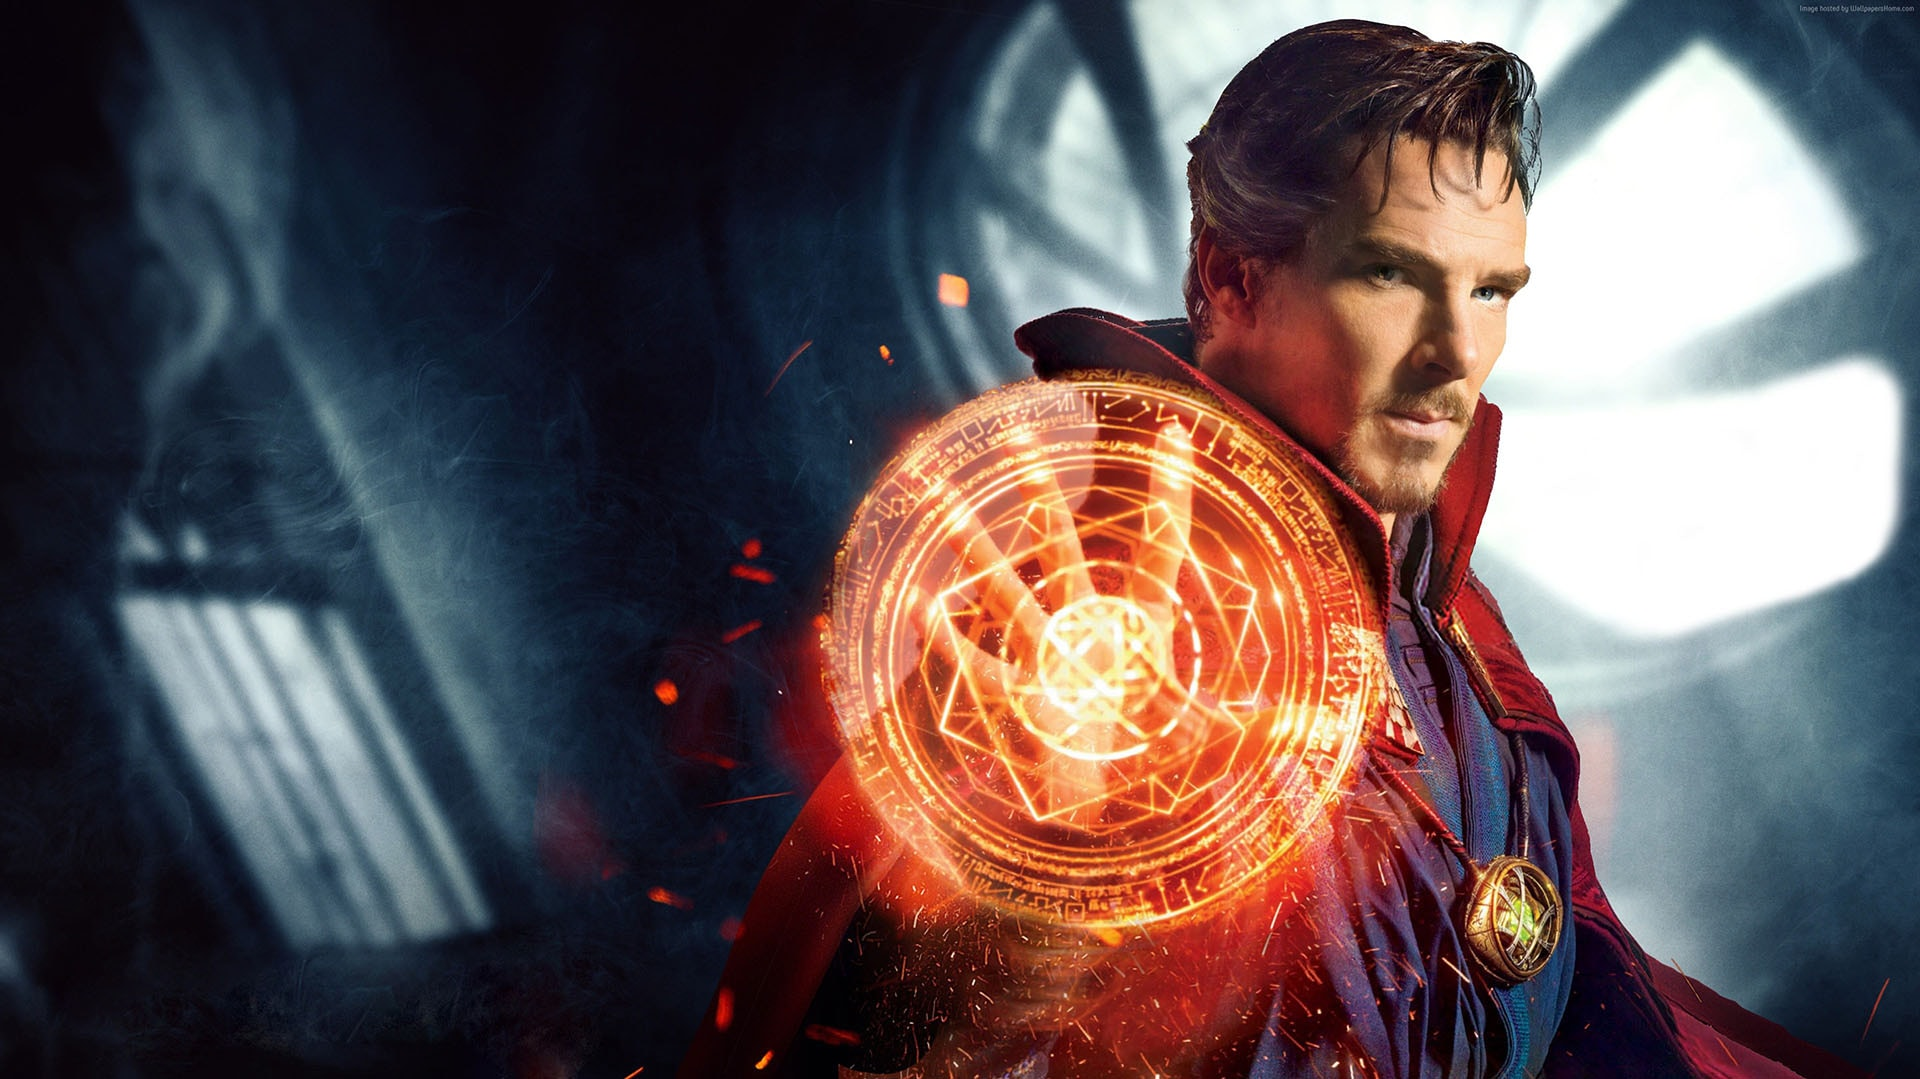 Doctor Strange Is a Visually Dazzling Film That Adds Magic to the Marvel Universe | NDTV Gadgets 360